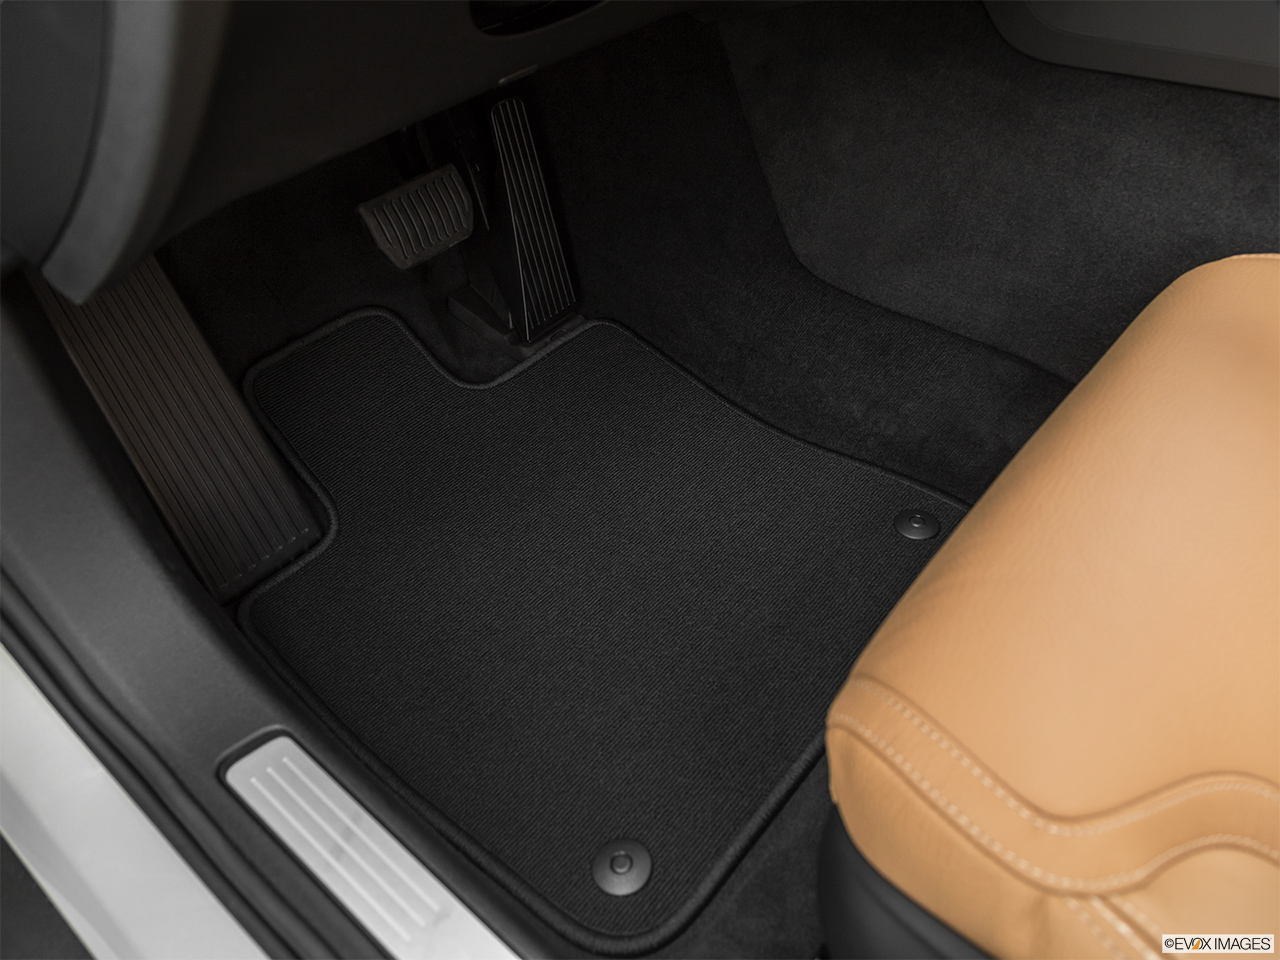 2020 Volvo V60 Cross Country T5 AWD Driver's floor mat and pedals. Mid-seat level from outside looking in.